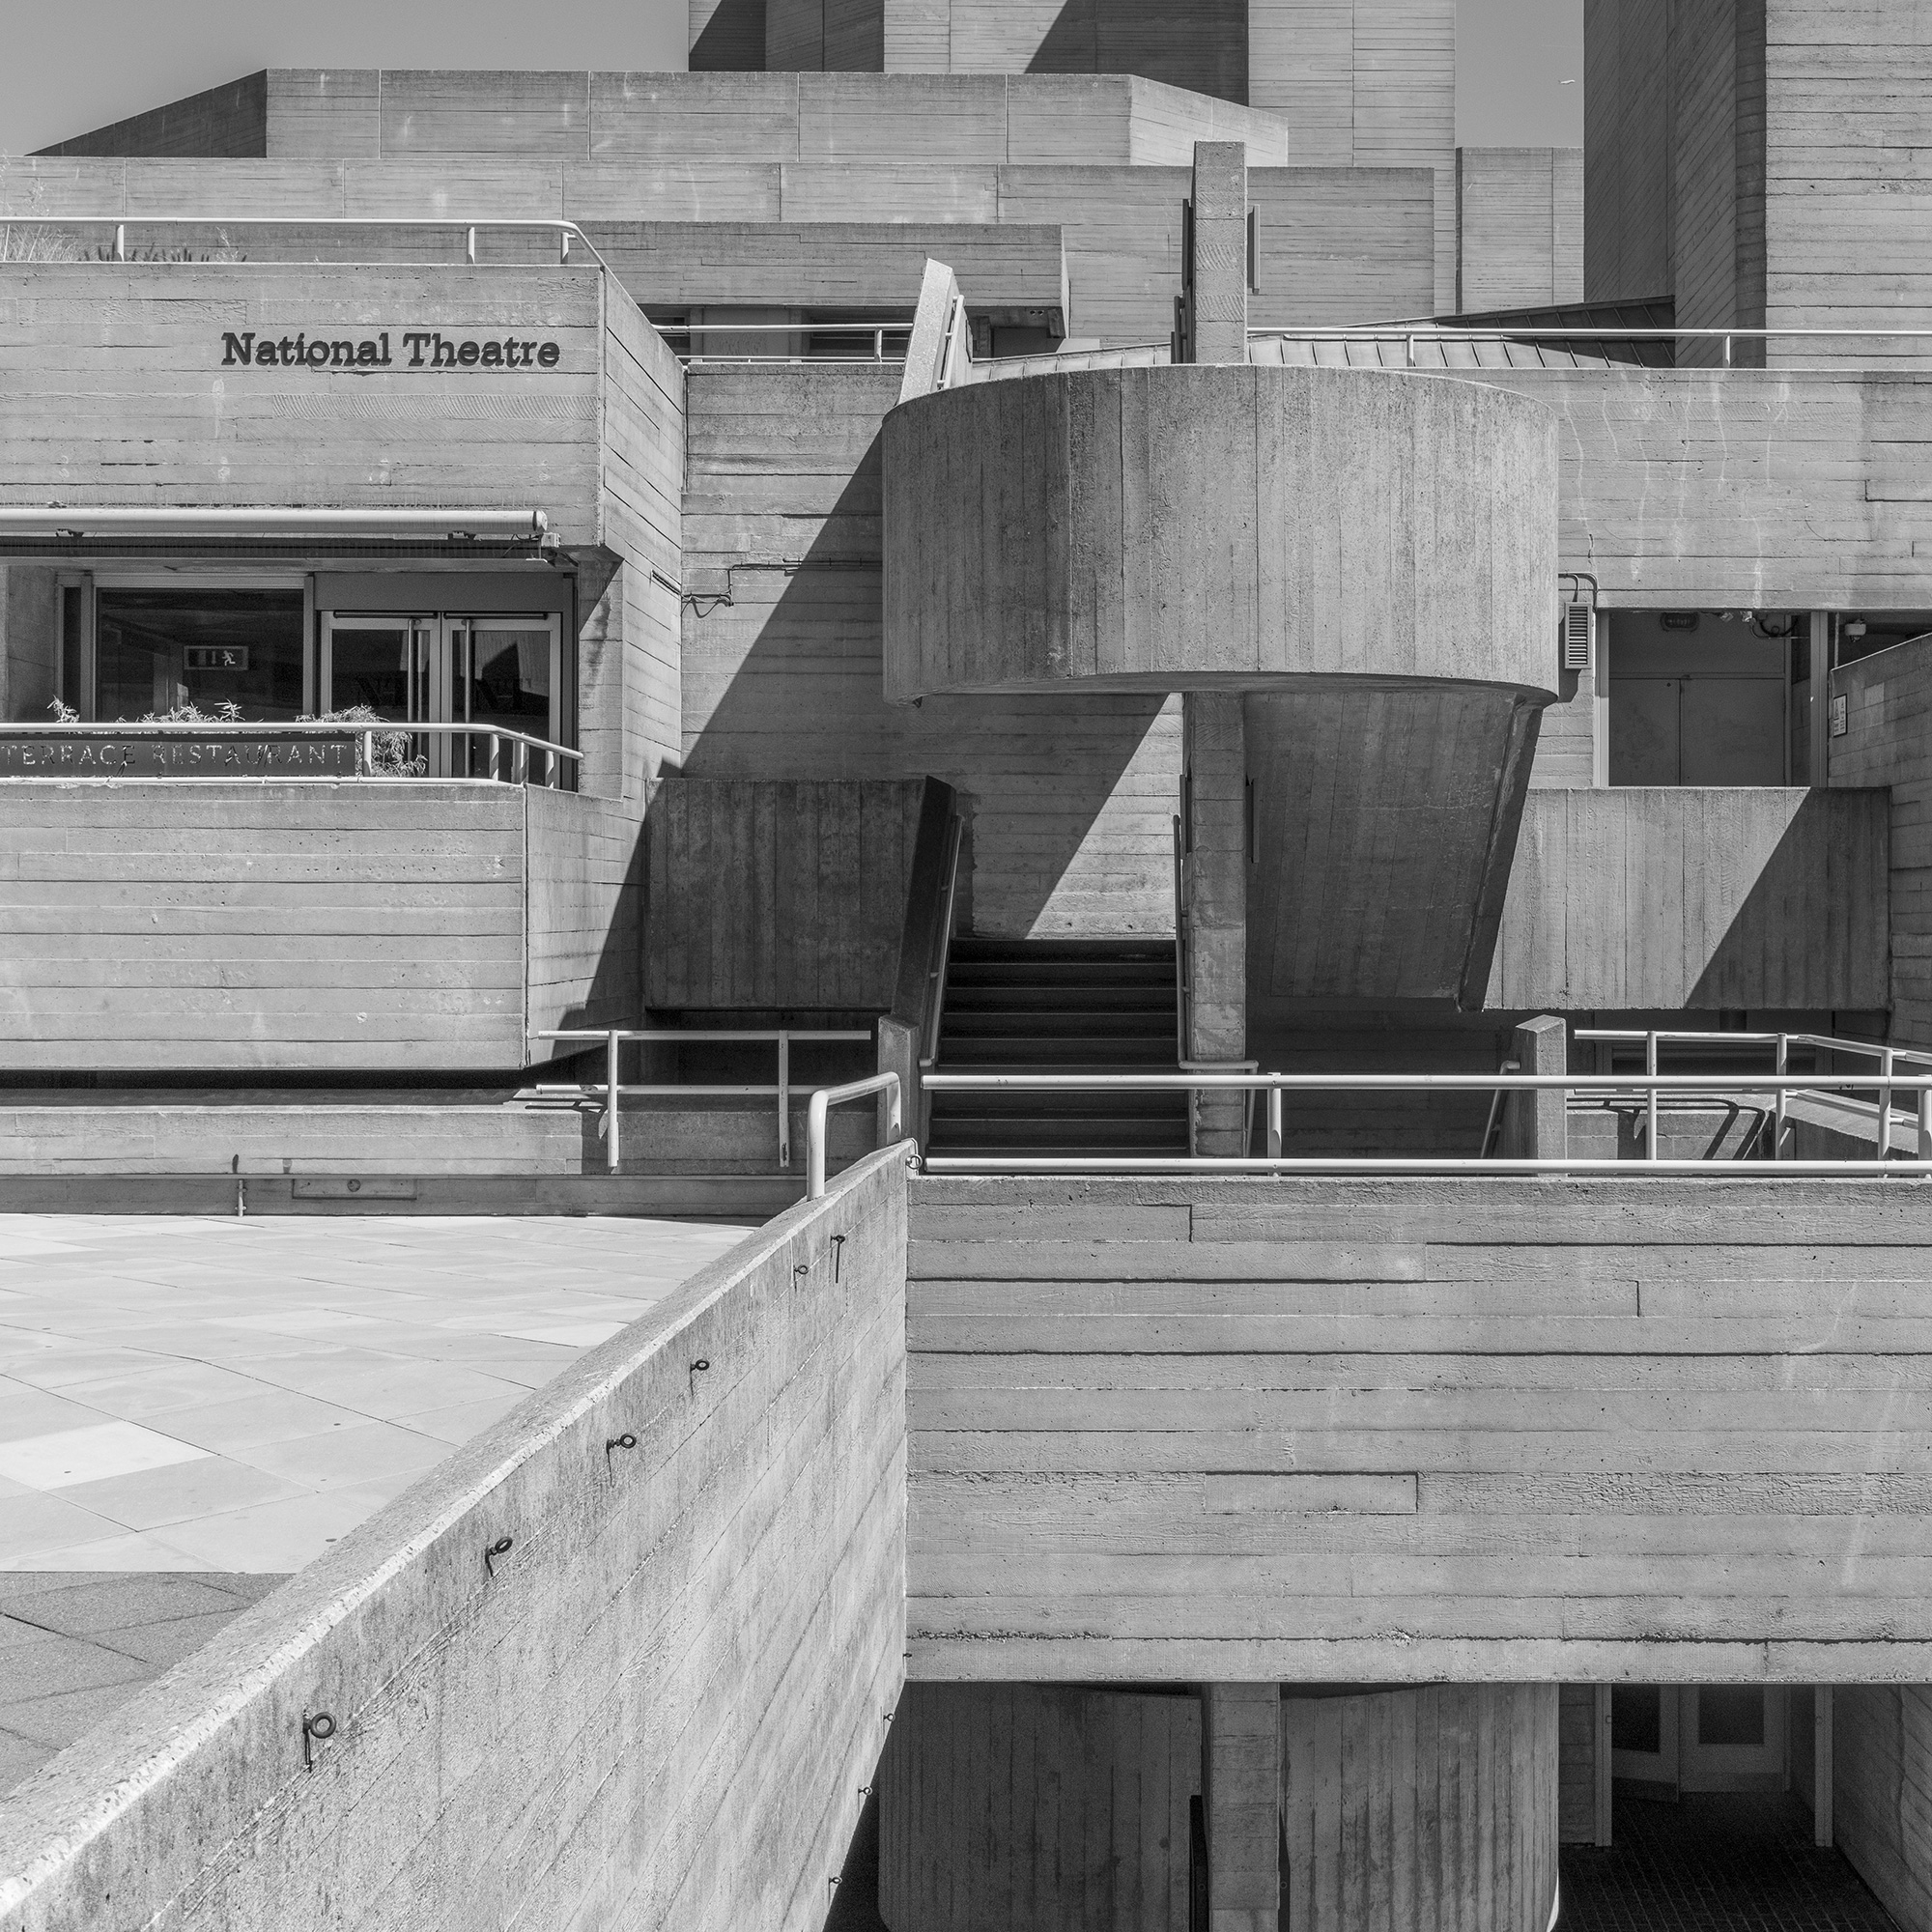 National Theatre photographed by Colin Walton at WaltonCreative.com